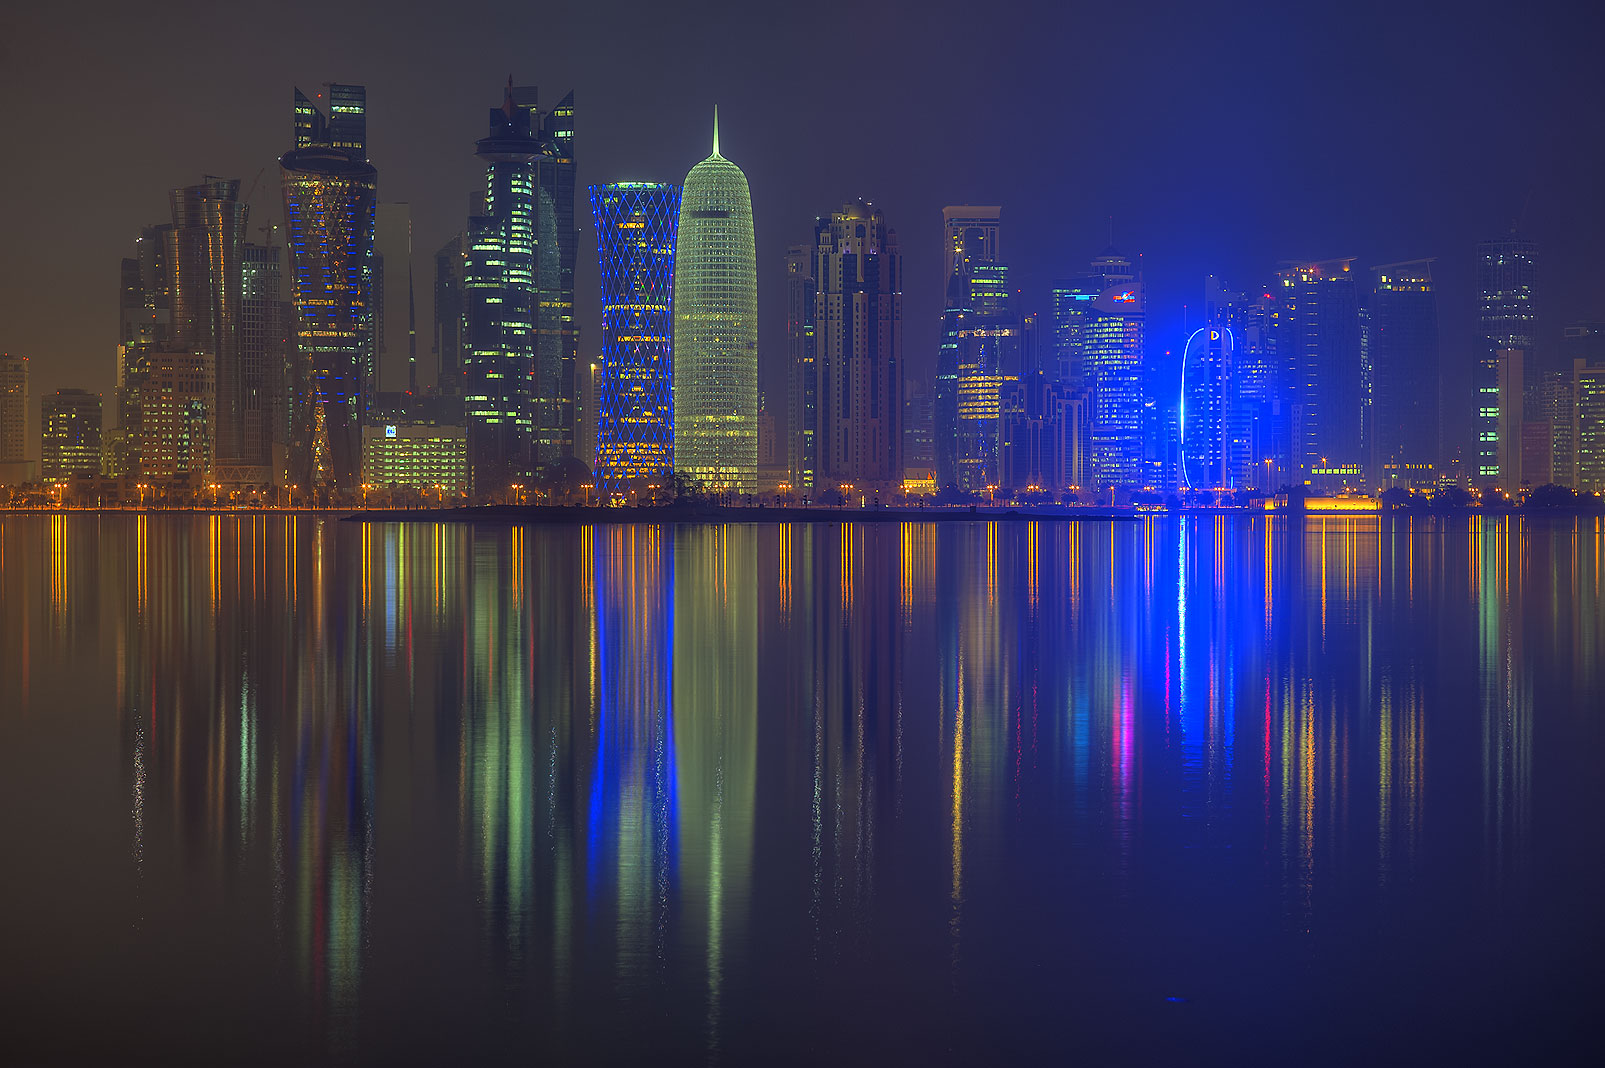 Doha Skyline Lights Wiring Diagrams Need Working Lm3915 Vu Meter Schematic Page 2 Diyaudio Photo 1534 27 Of West Bay Towers From Corniche Promenade Rh Asergeev Com Abu Dhabi Dubai